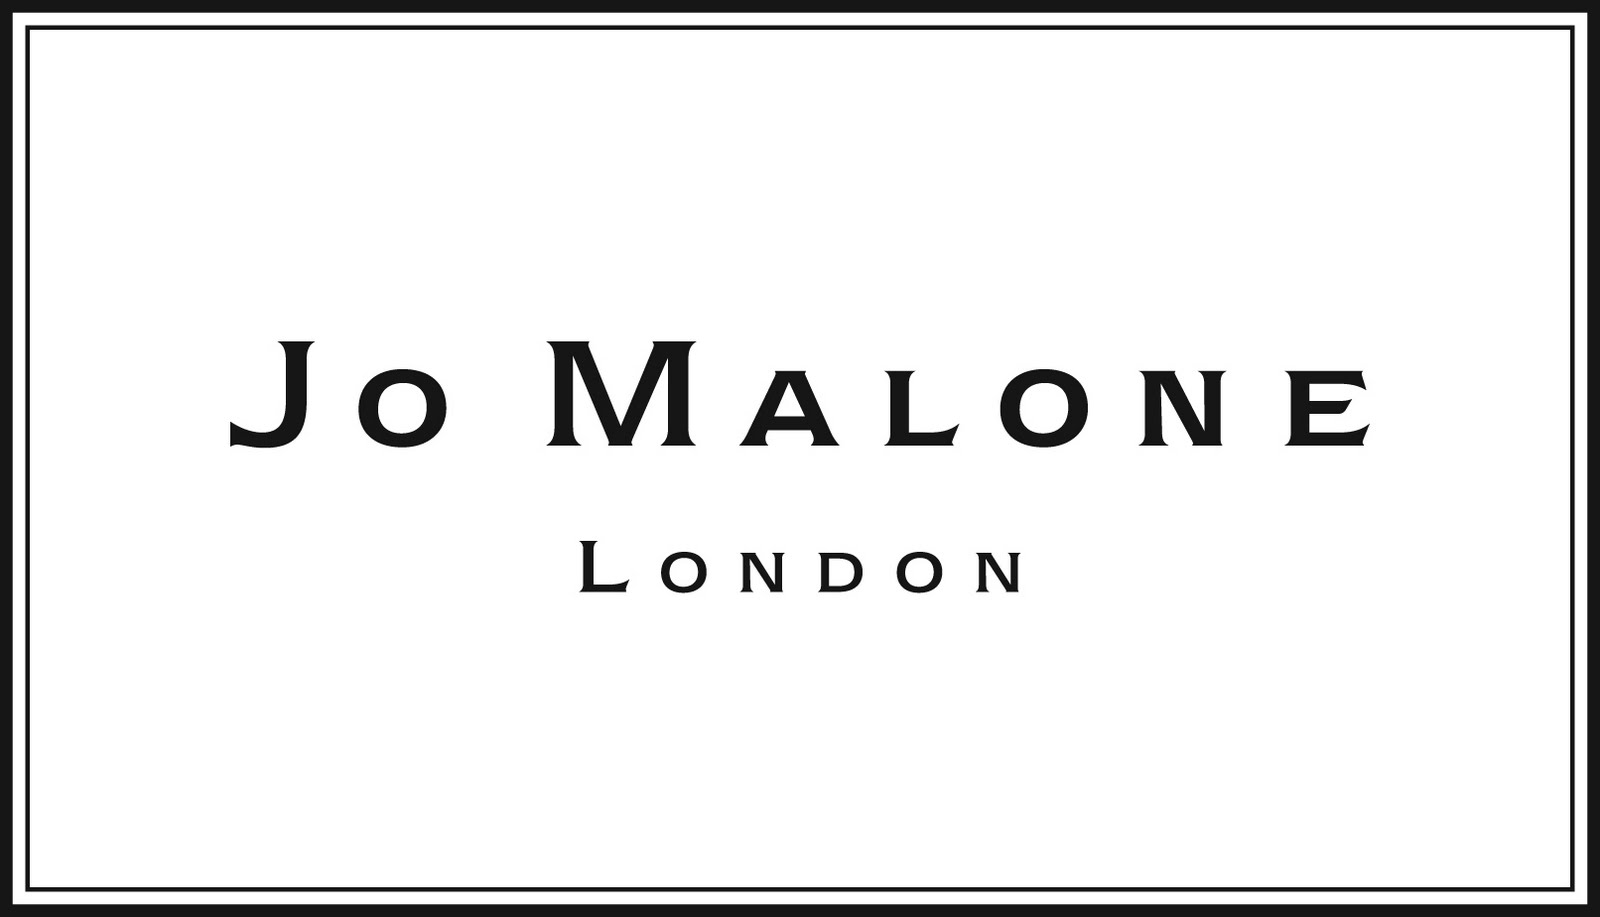 Jo Malone London Coupons